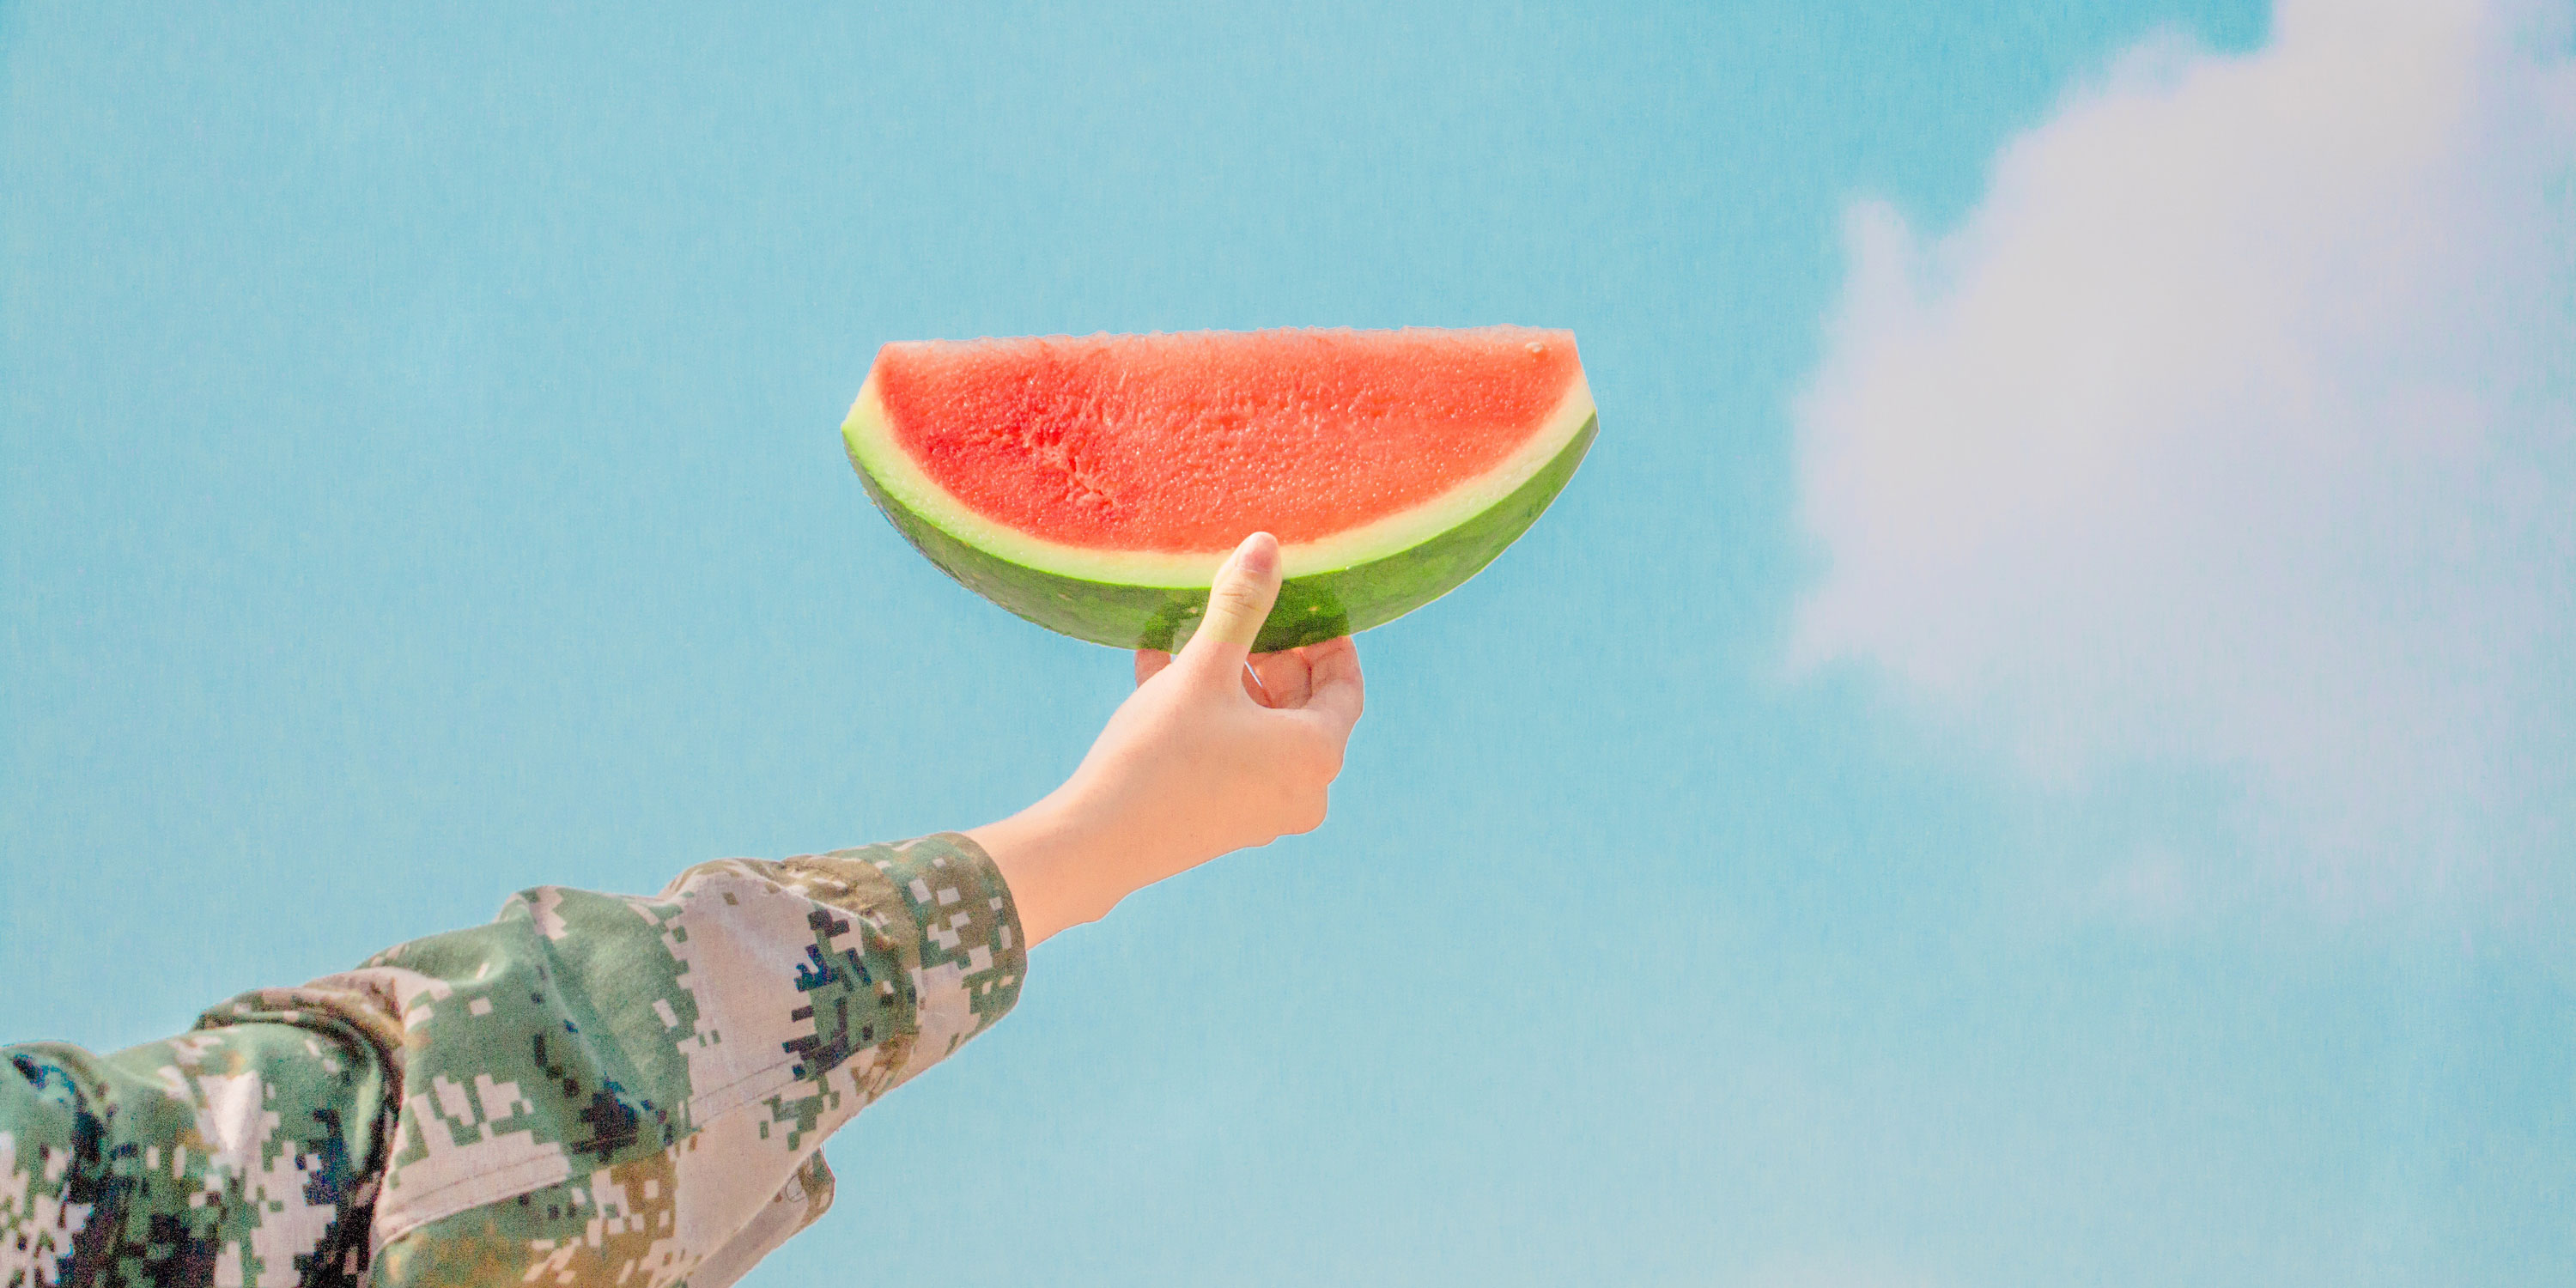 holding watermelon slice to the sky